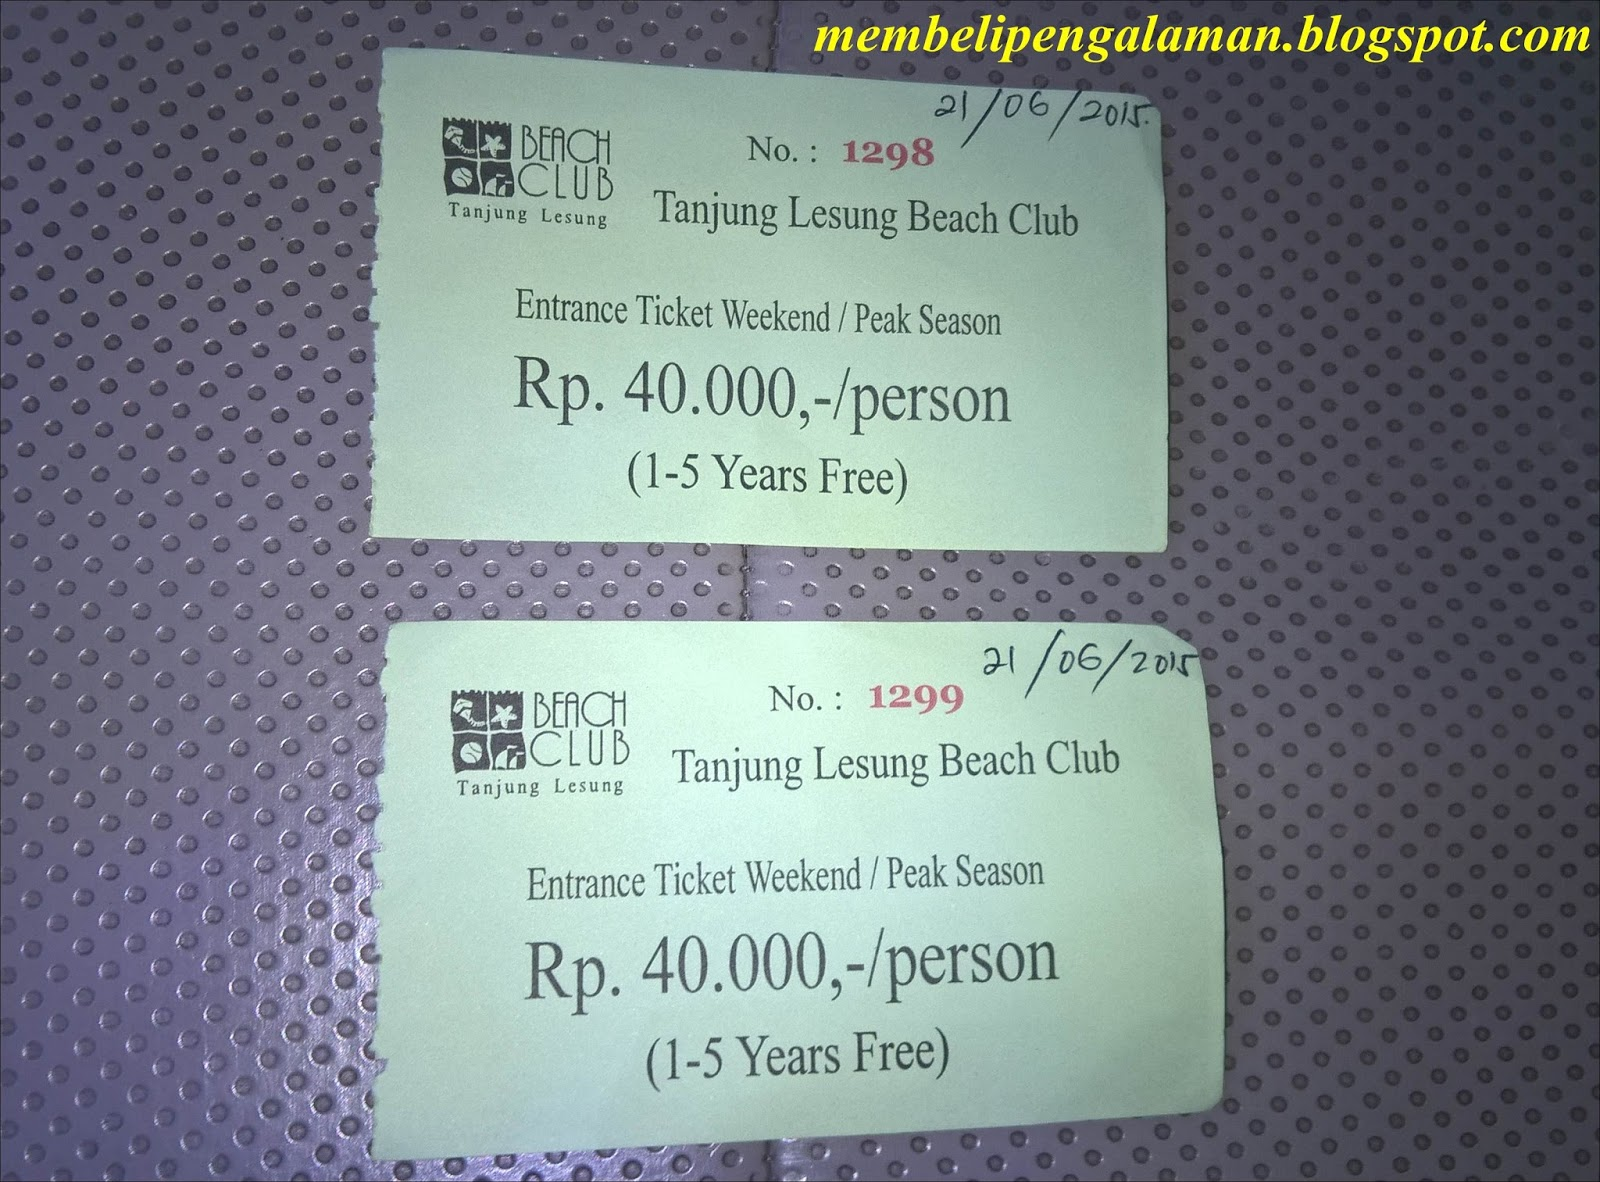 Tiket Masuk Weekend di area Tanjung Lesung Beach Club (include parkir ...